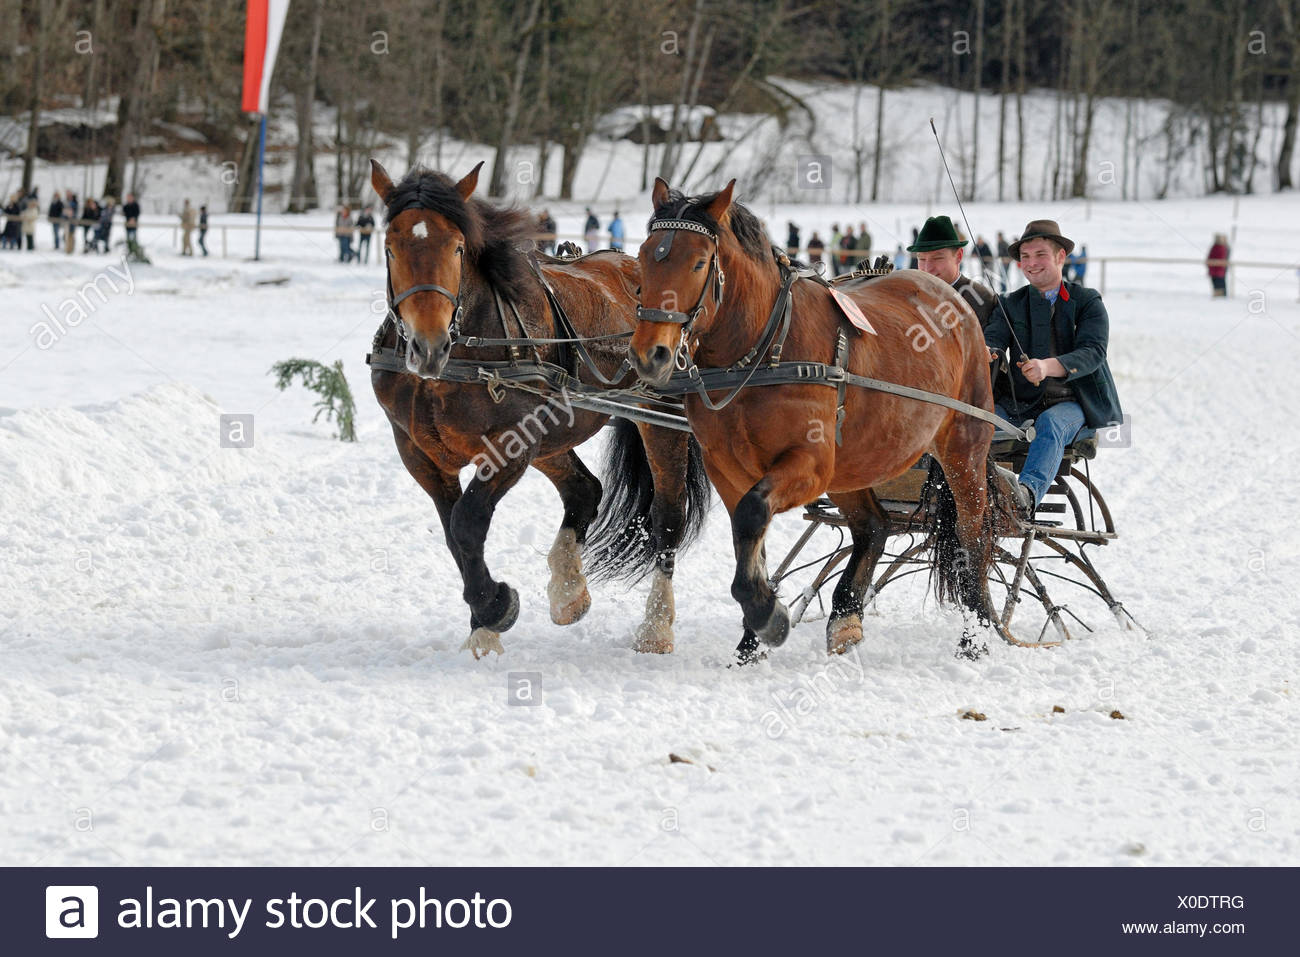 Sleigh race for Oberlaender carriage and pairs in Parsberg, Upper Bavaria, Bavaria - Stock Image